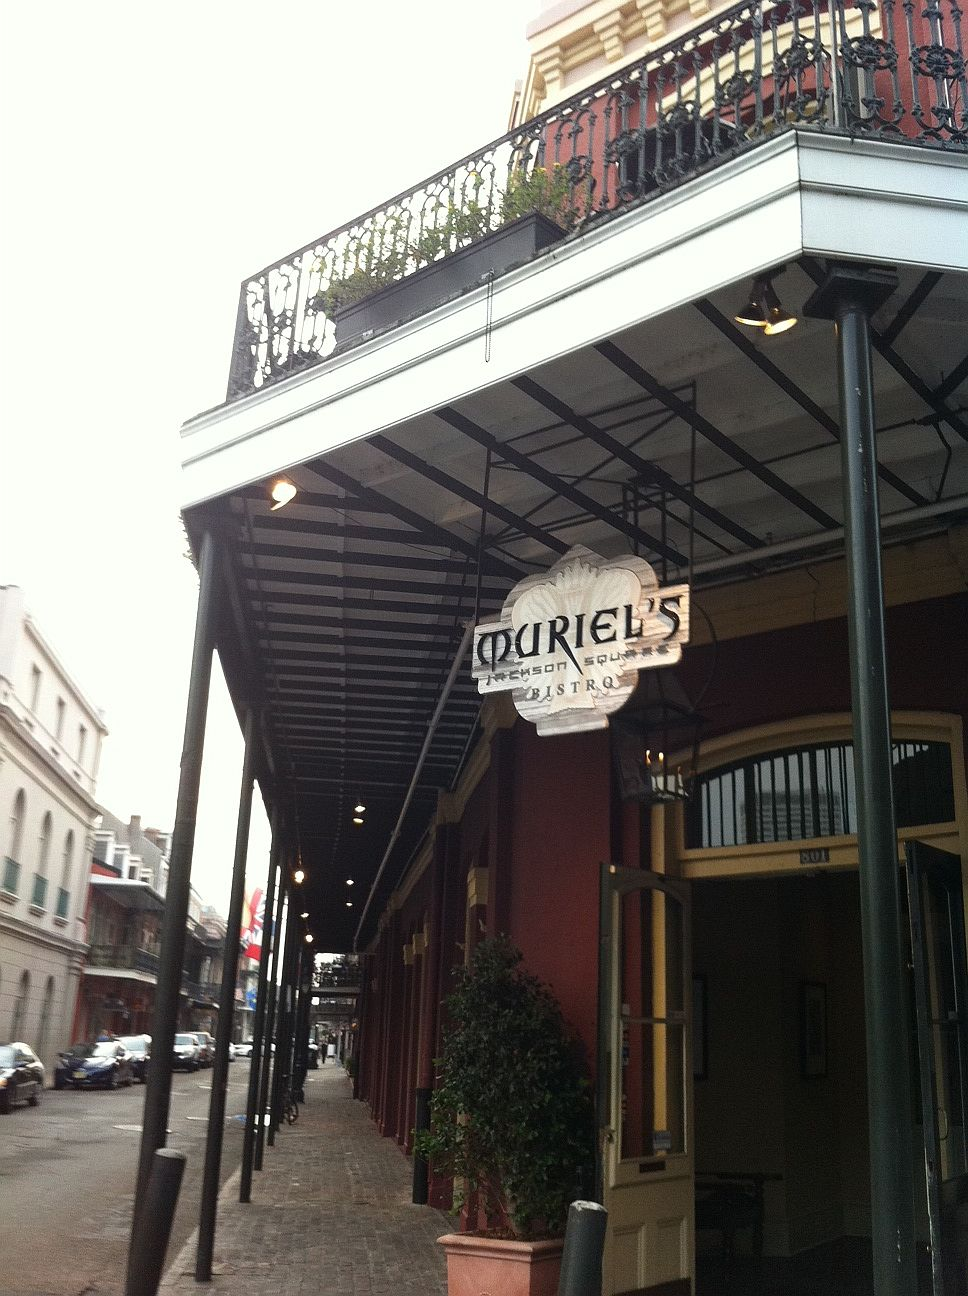 Muriels_new orleans